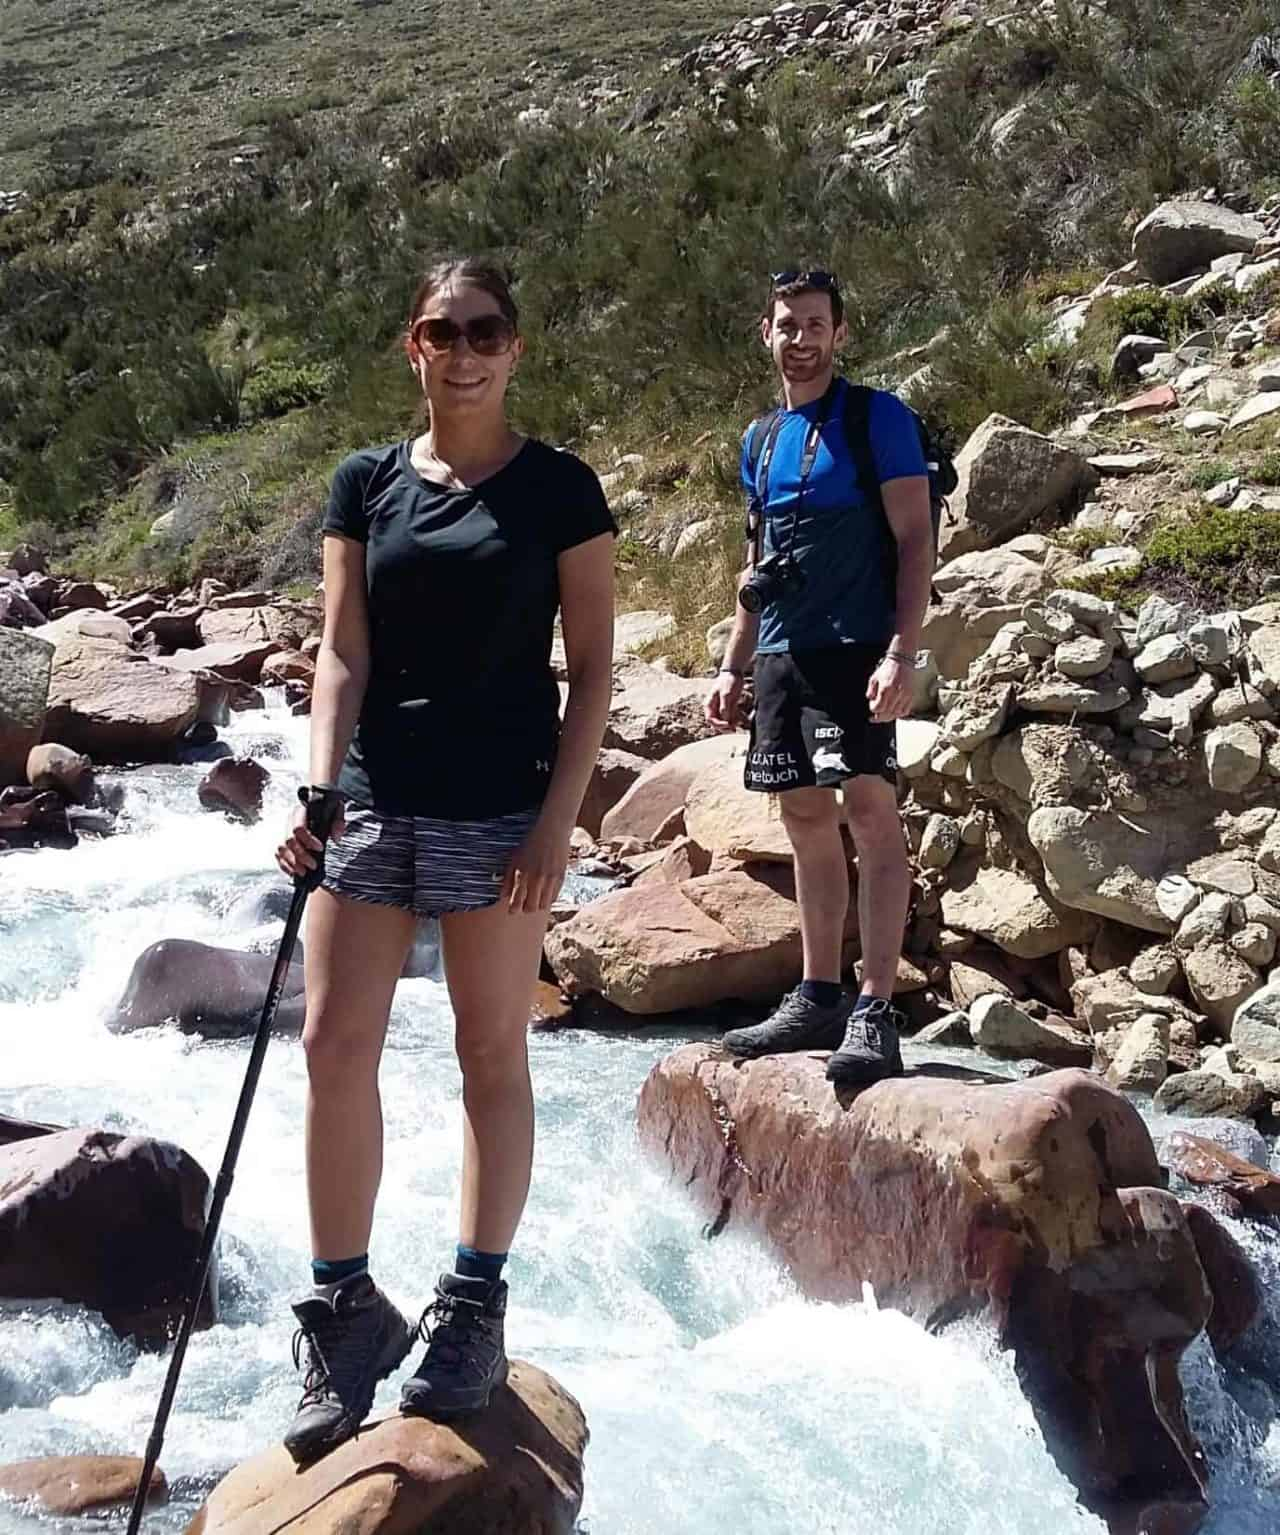 Hiking Tour in the Andes